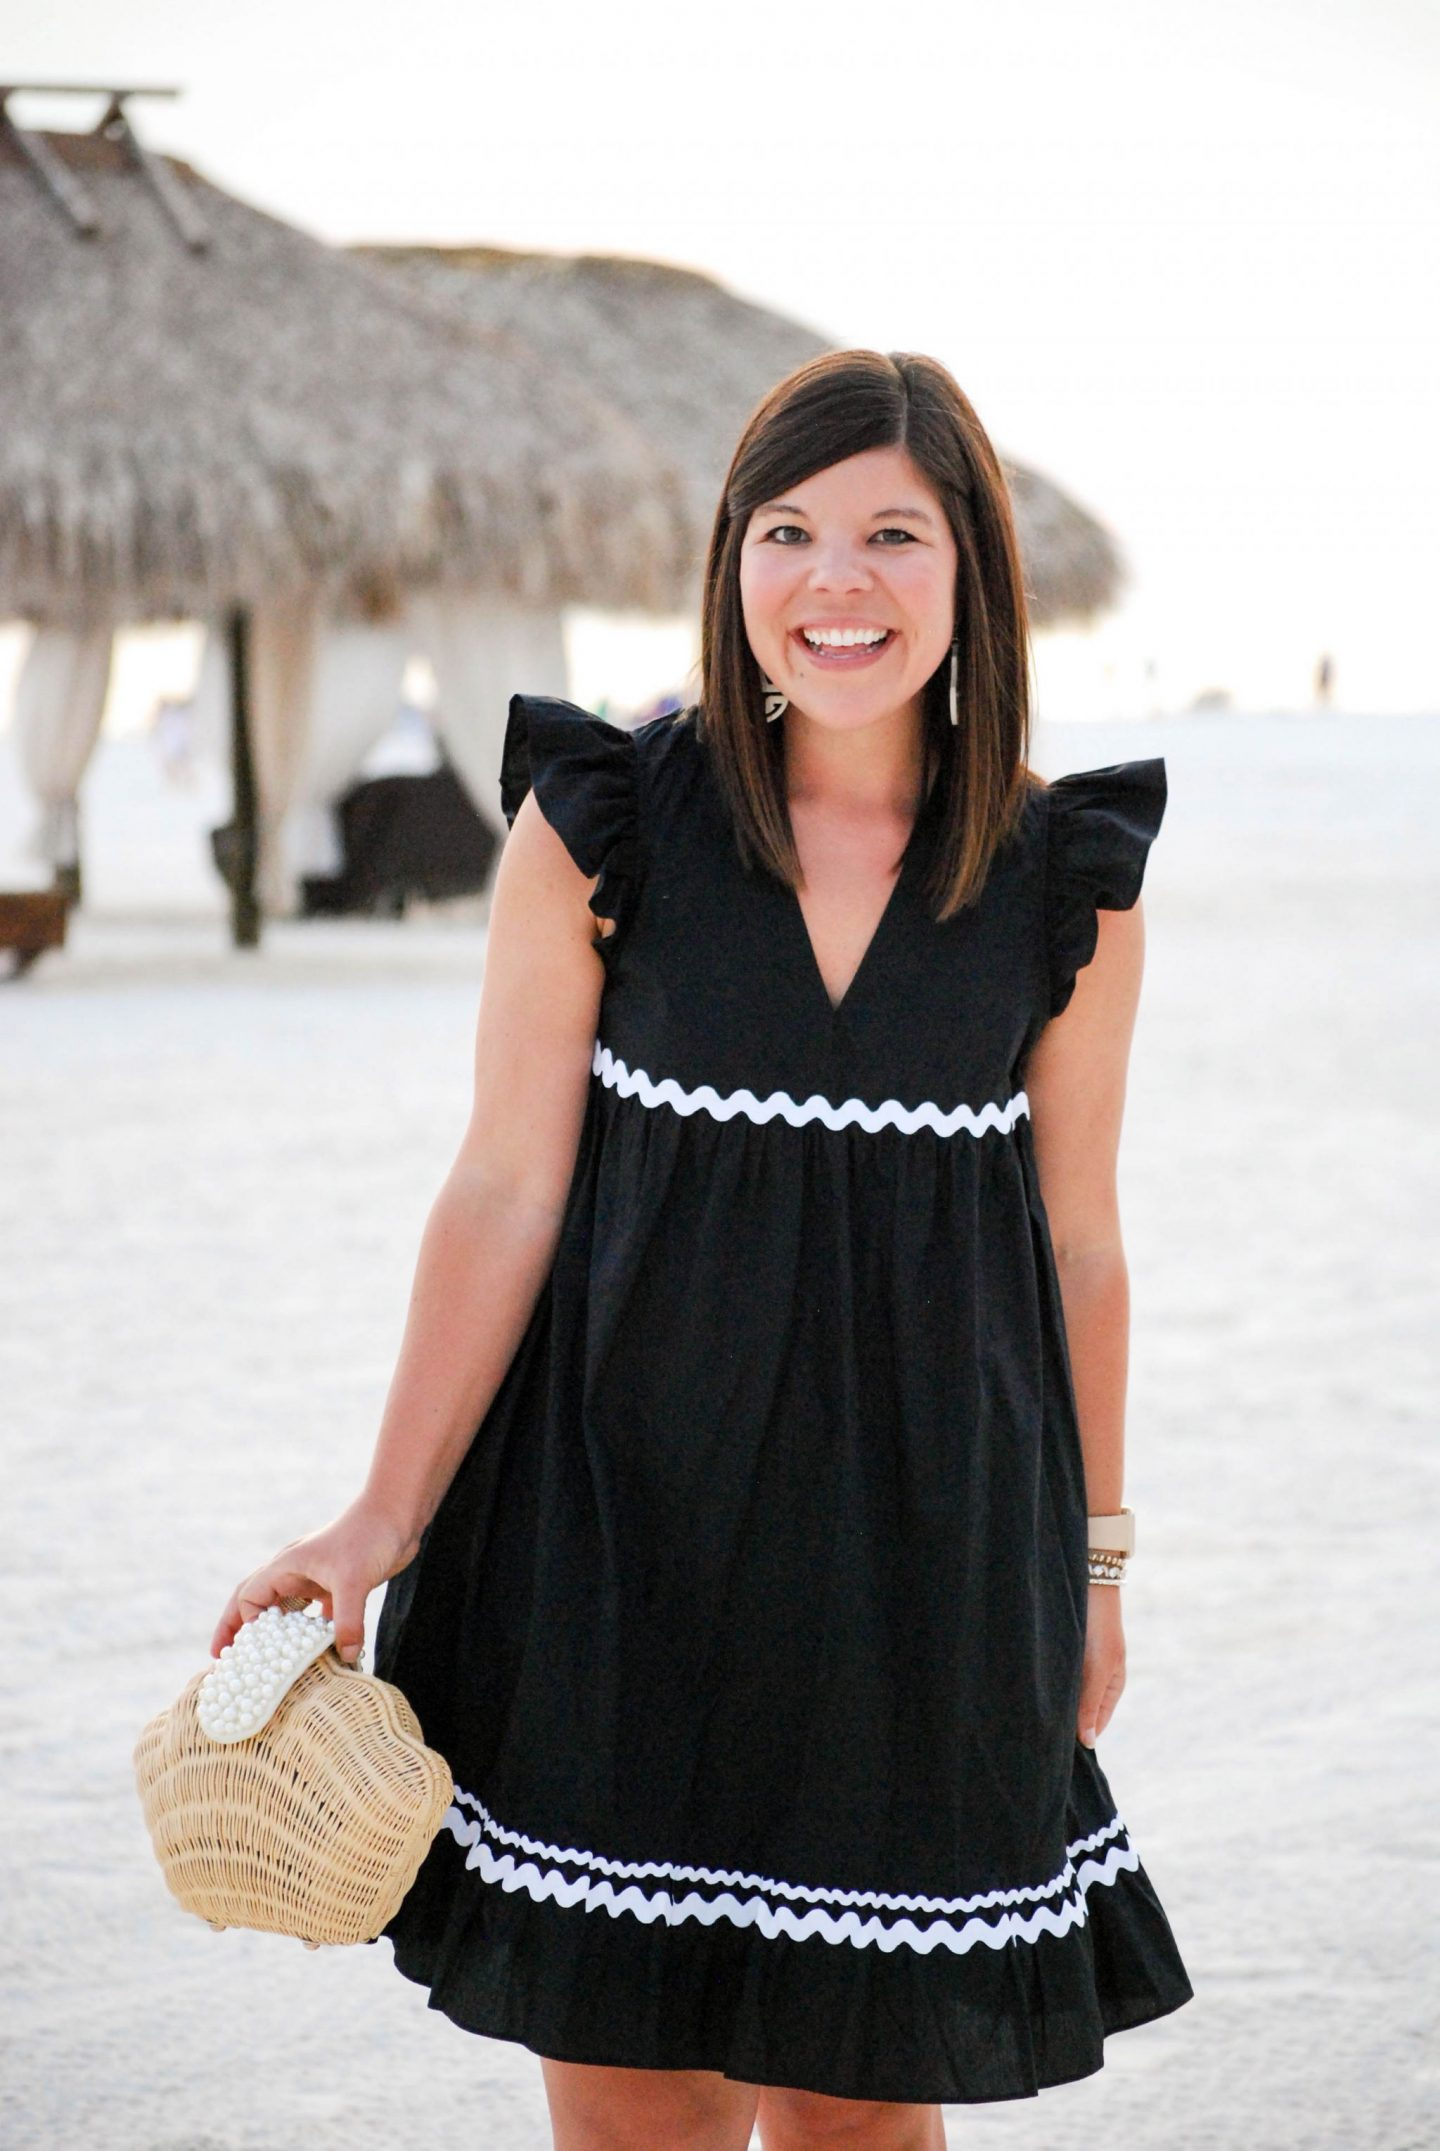 Ric Rac Dress on the Beach + Nordstrom Giveaway!